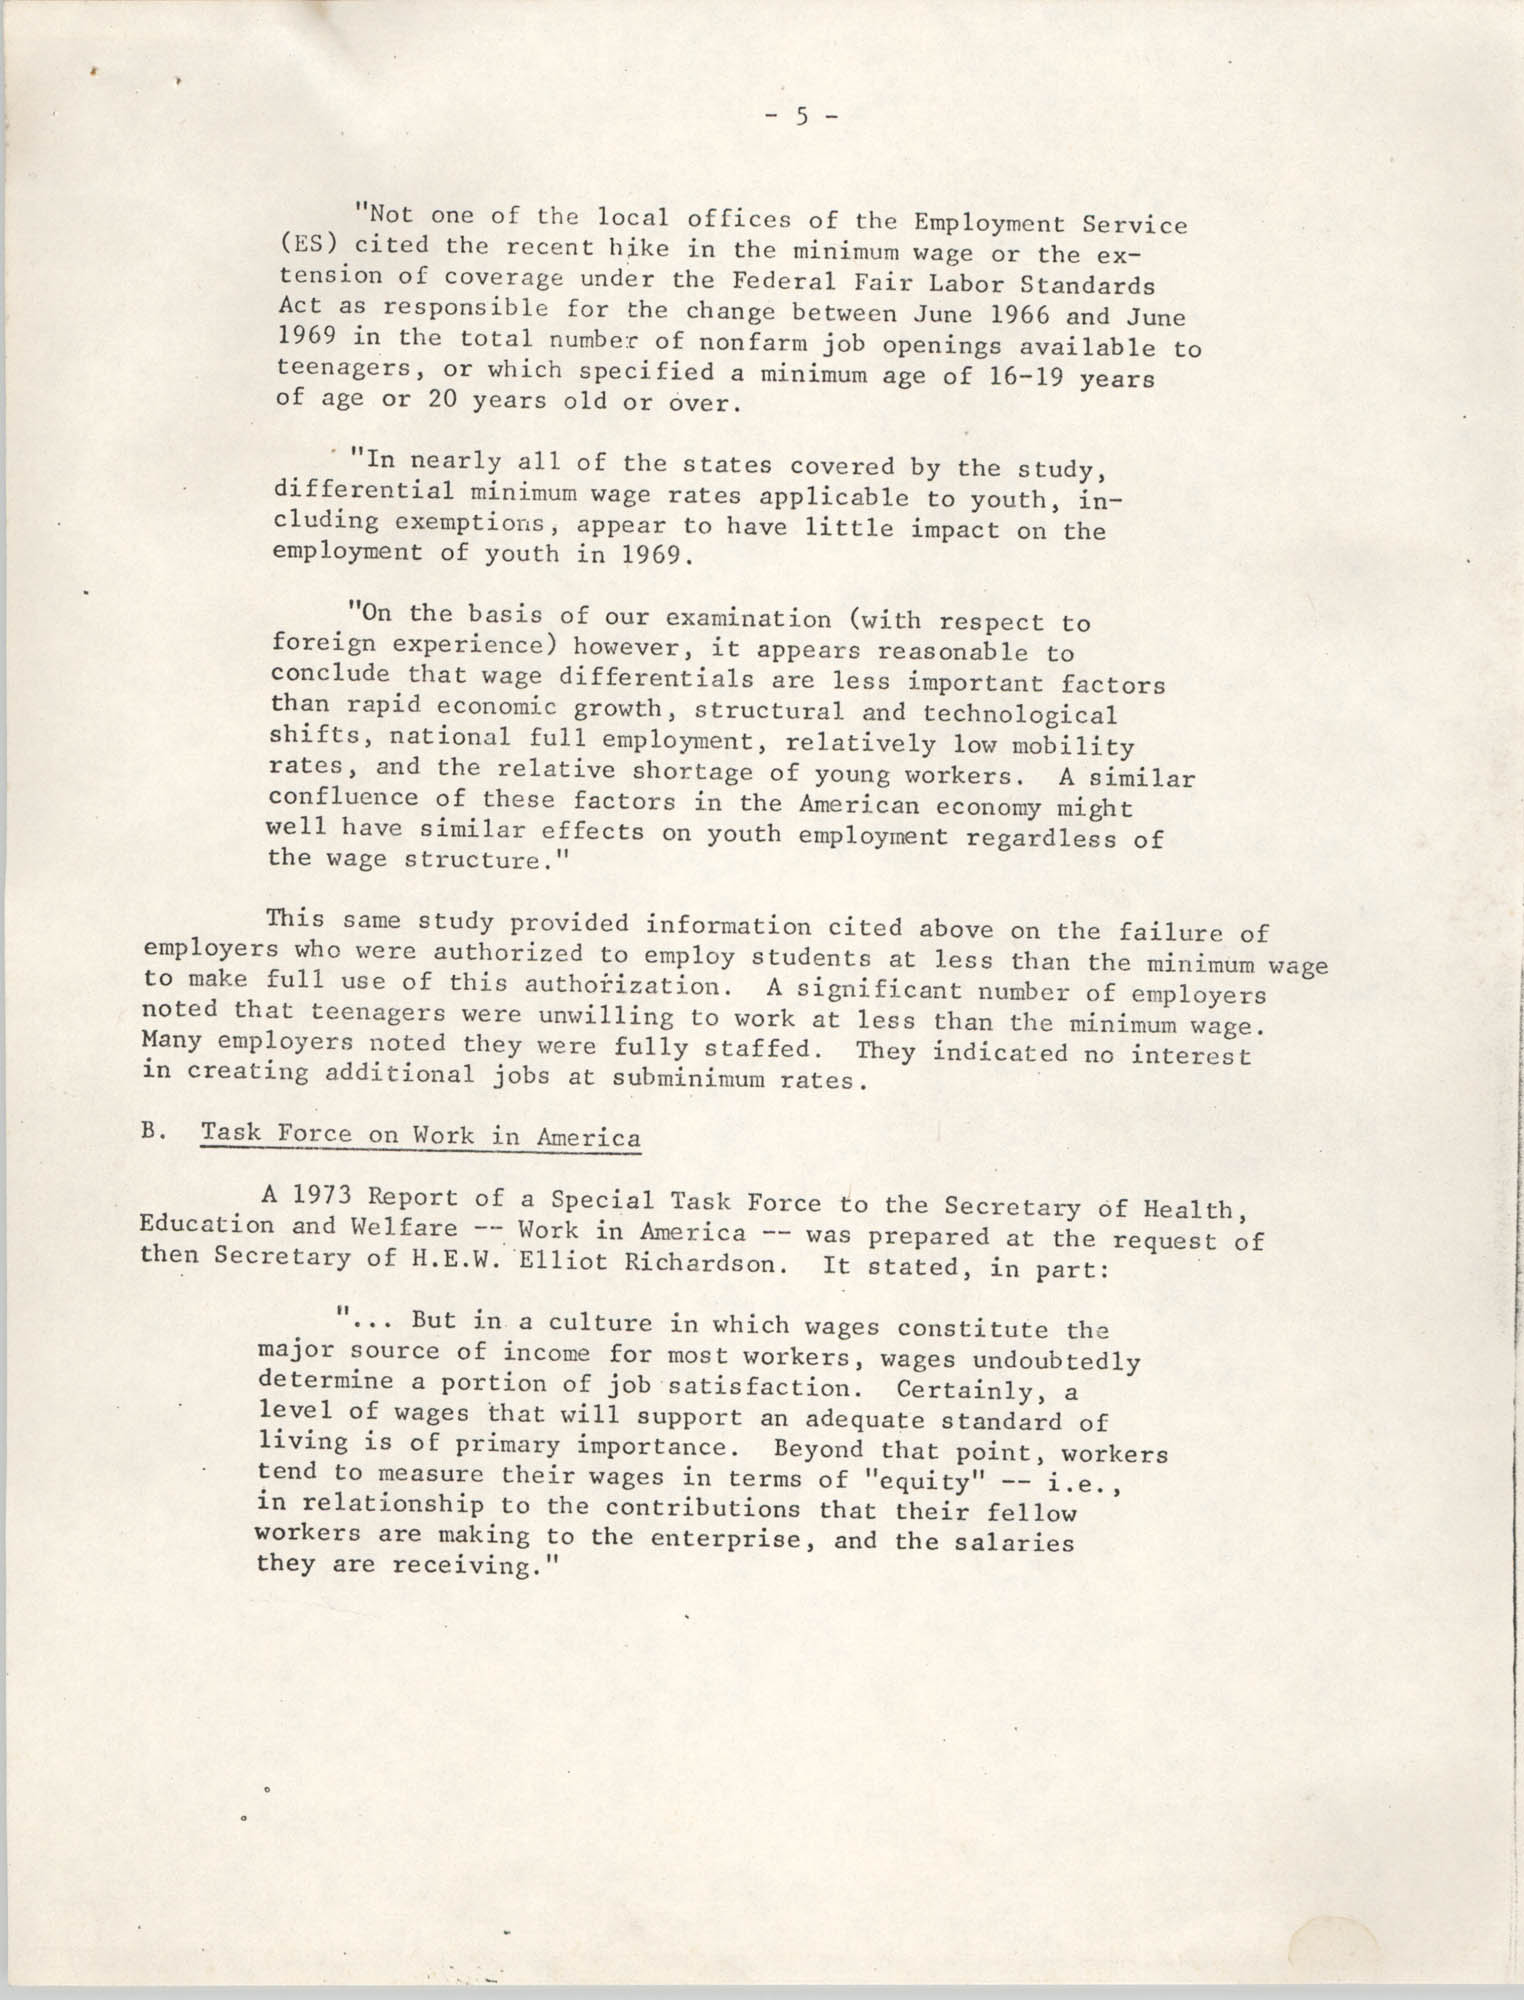 1977 Amendments to the Fair Labor Standards Act, Page 5